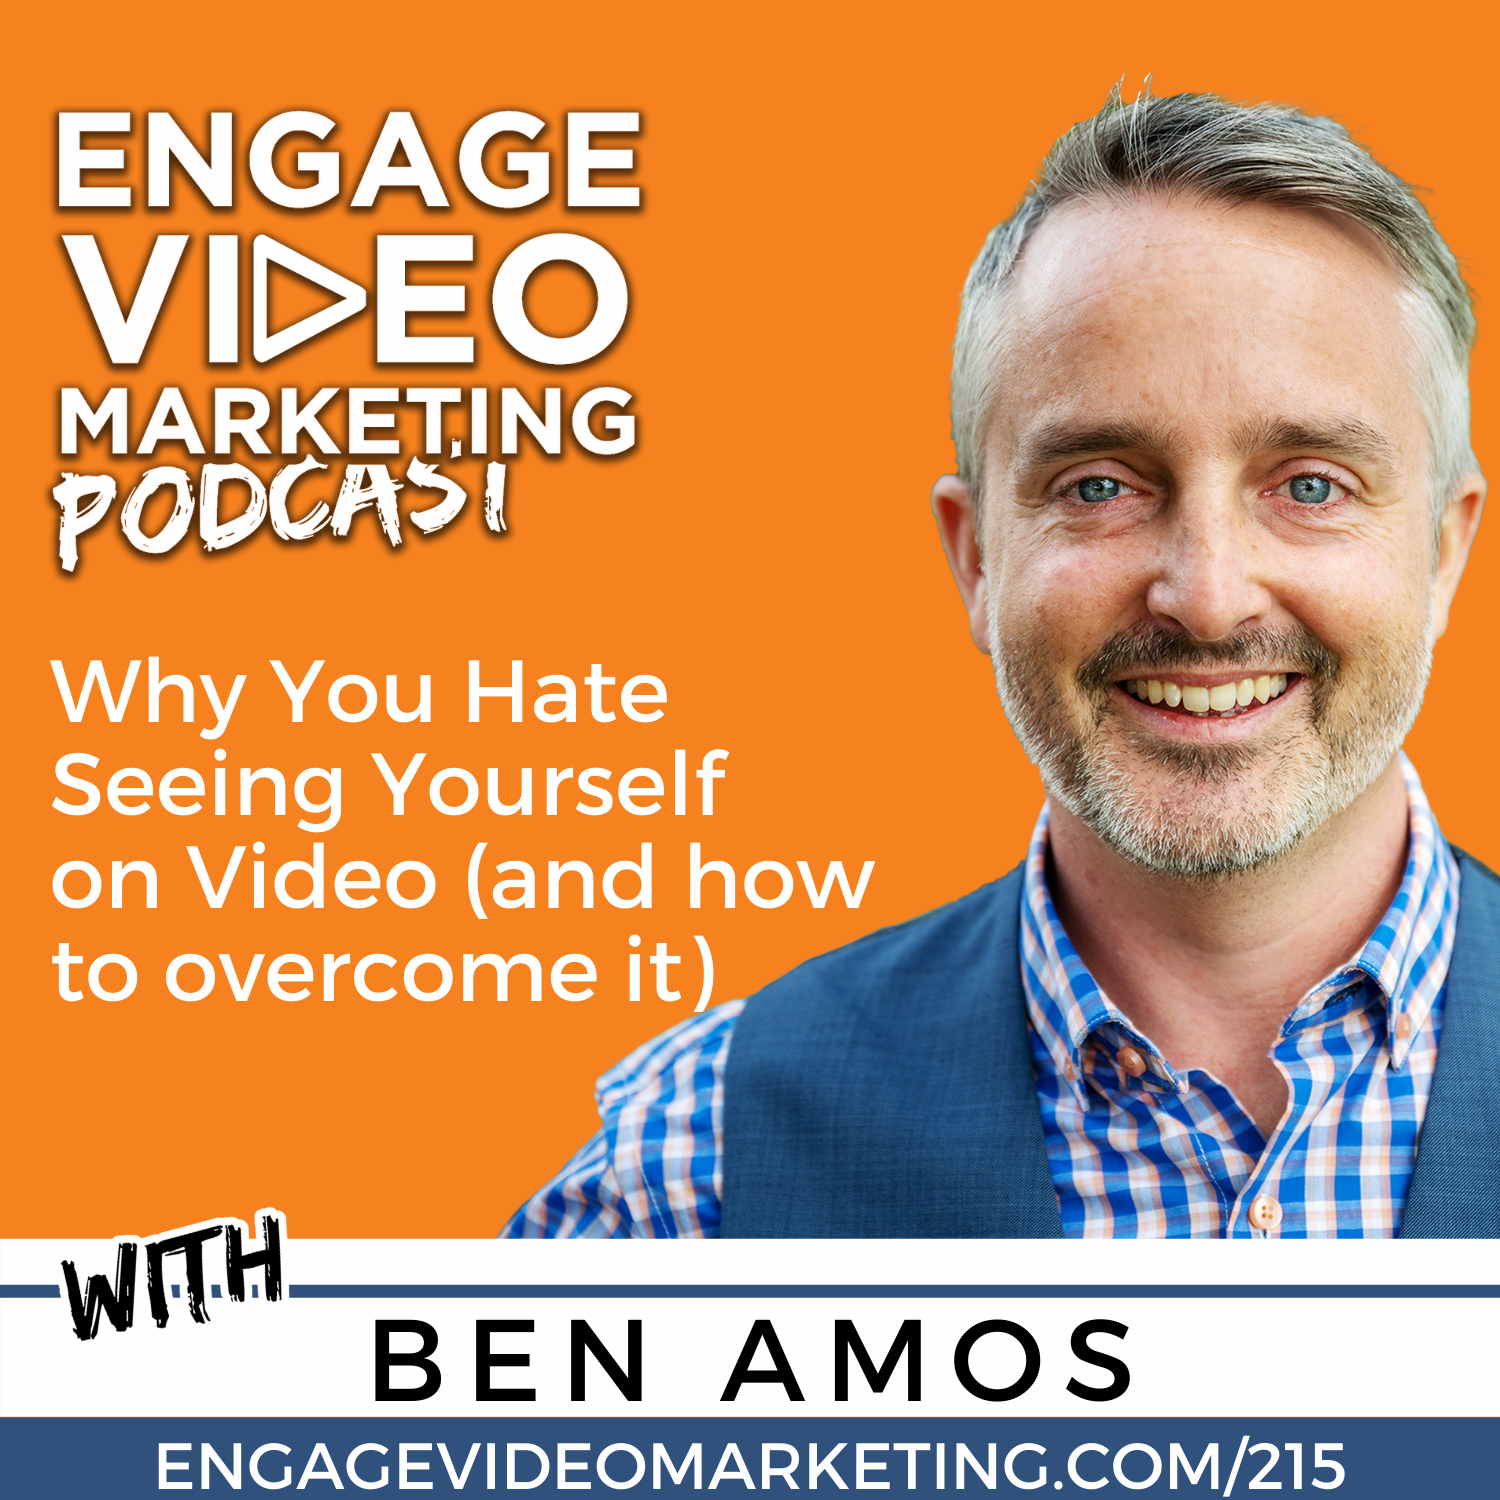 Why You Hate Seeing Yourself on Video (and how to overcome it) with Ben Amos